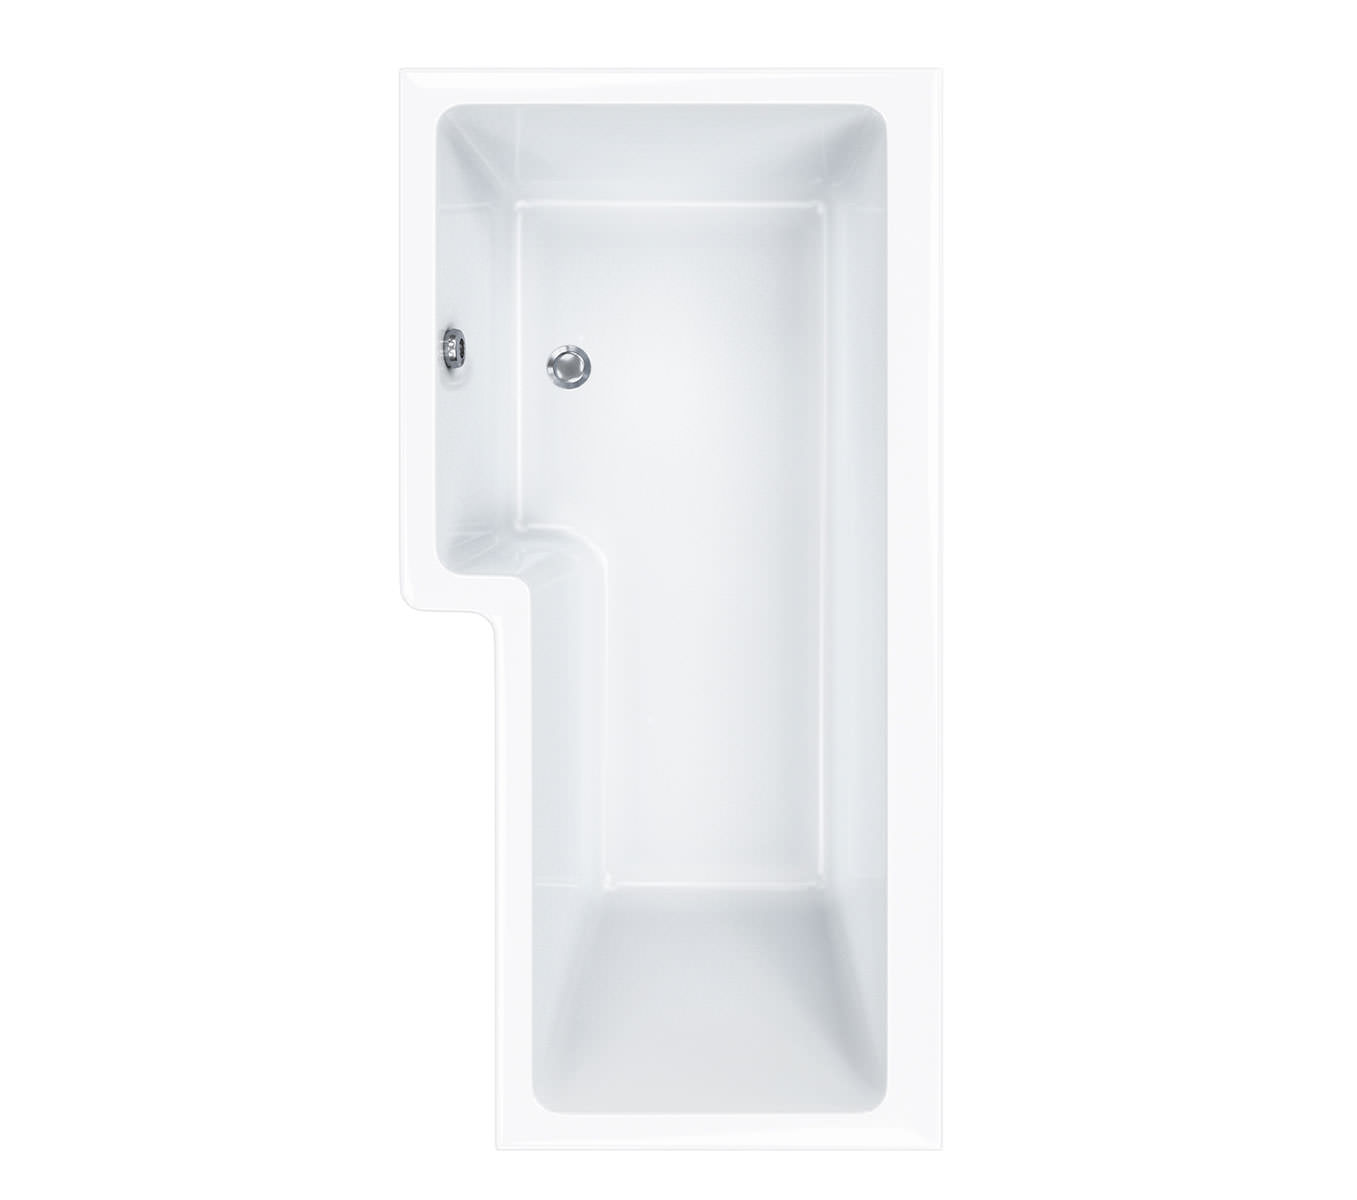 p l shaped shower baths with screens qs supplies uk q4 02207 carron quantum square 1700 x 850mm q4 02207